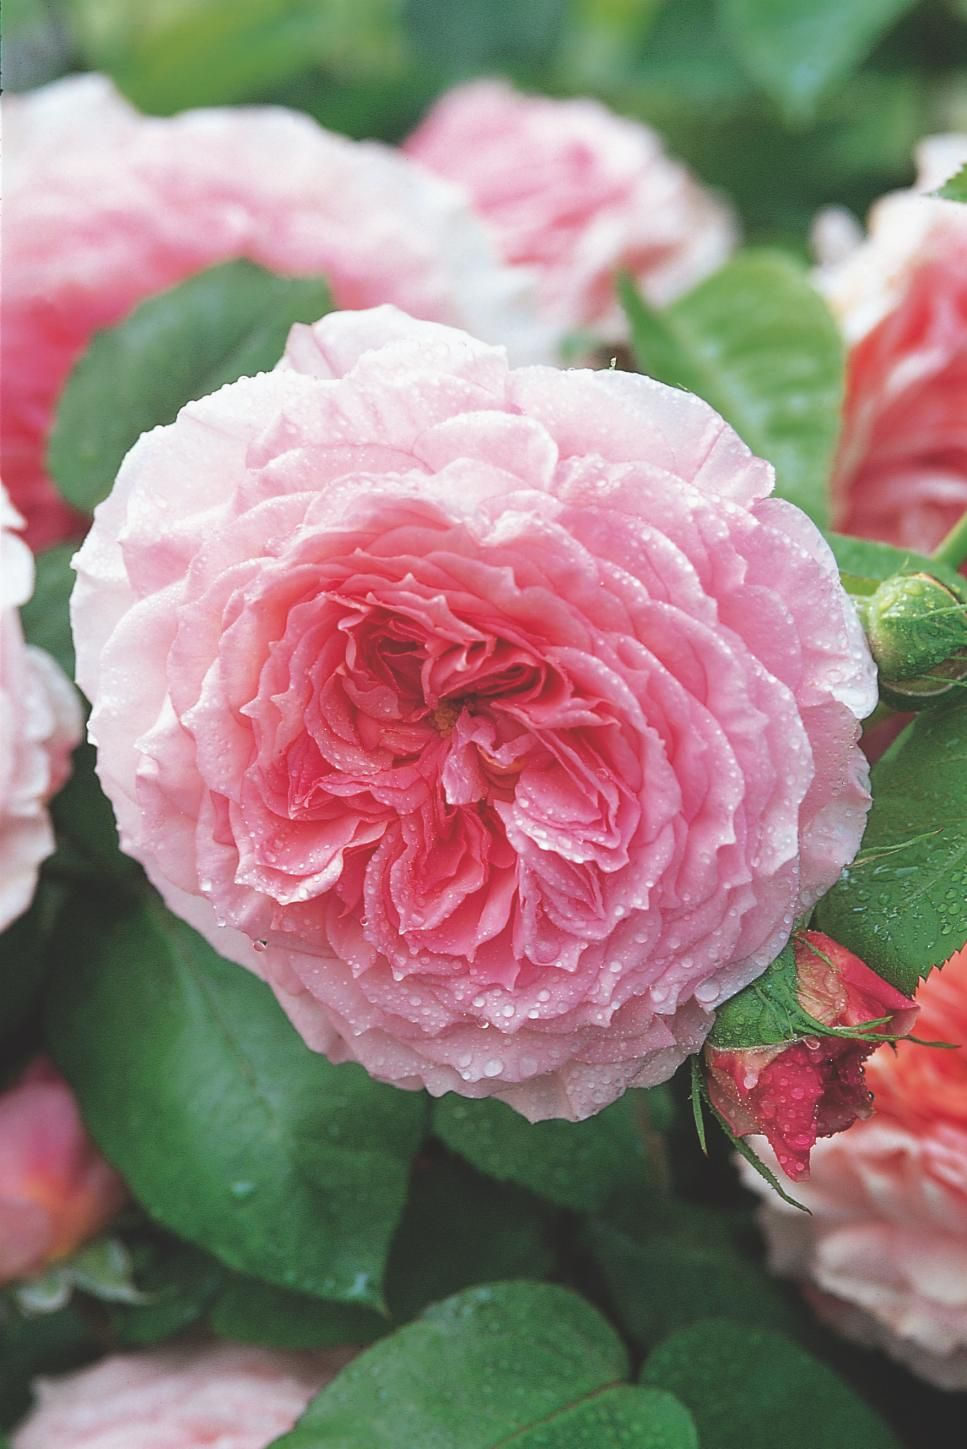 The most popular english roses in america a rose garden british rose breeder david austin creates some of the most beautiful flowers in the world find out which roses are most in demand in american gardens izmirmasajfo